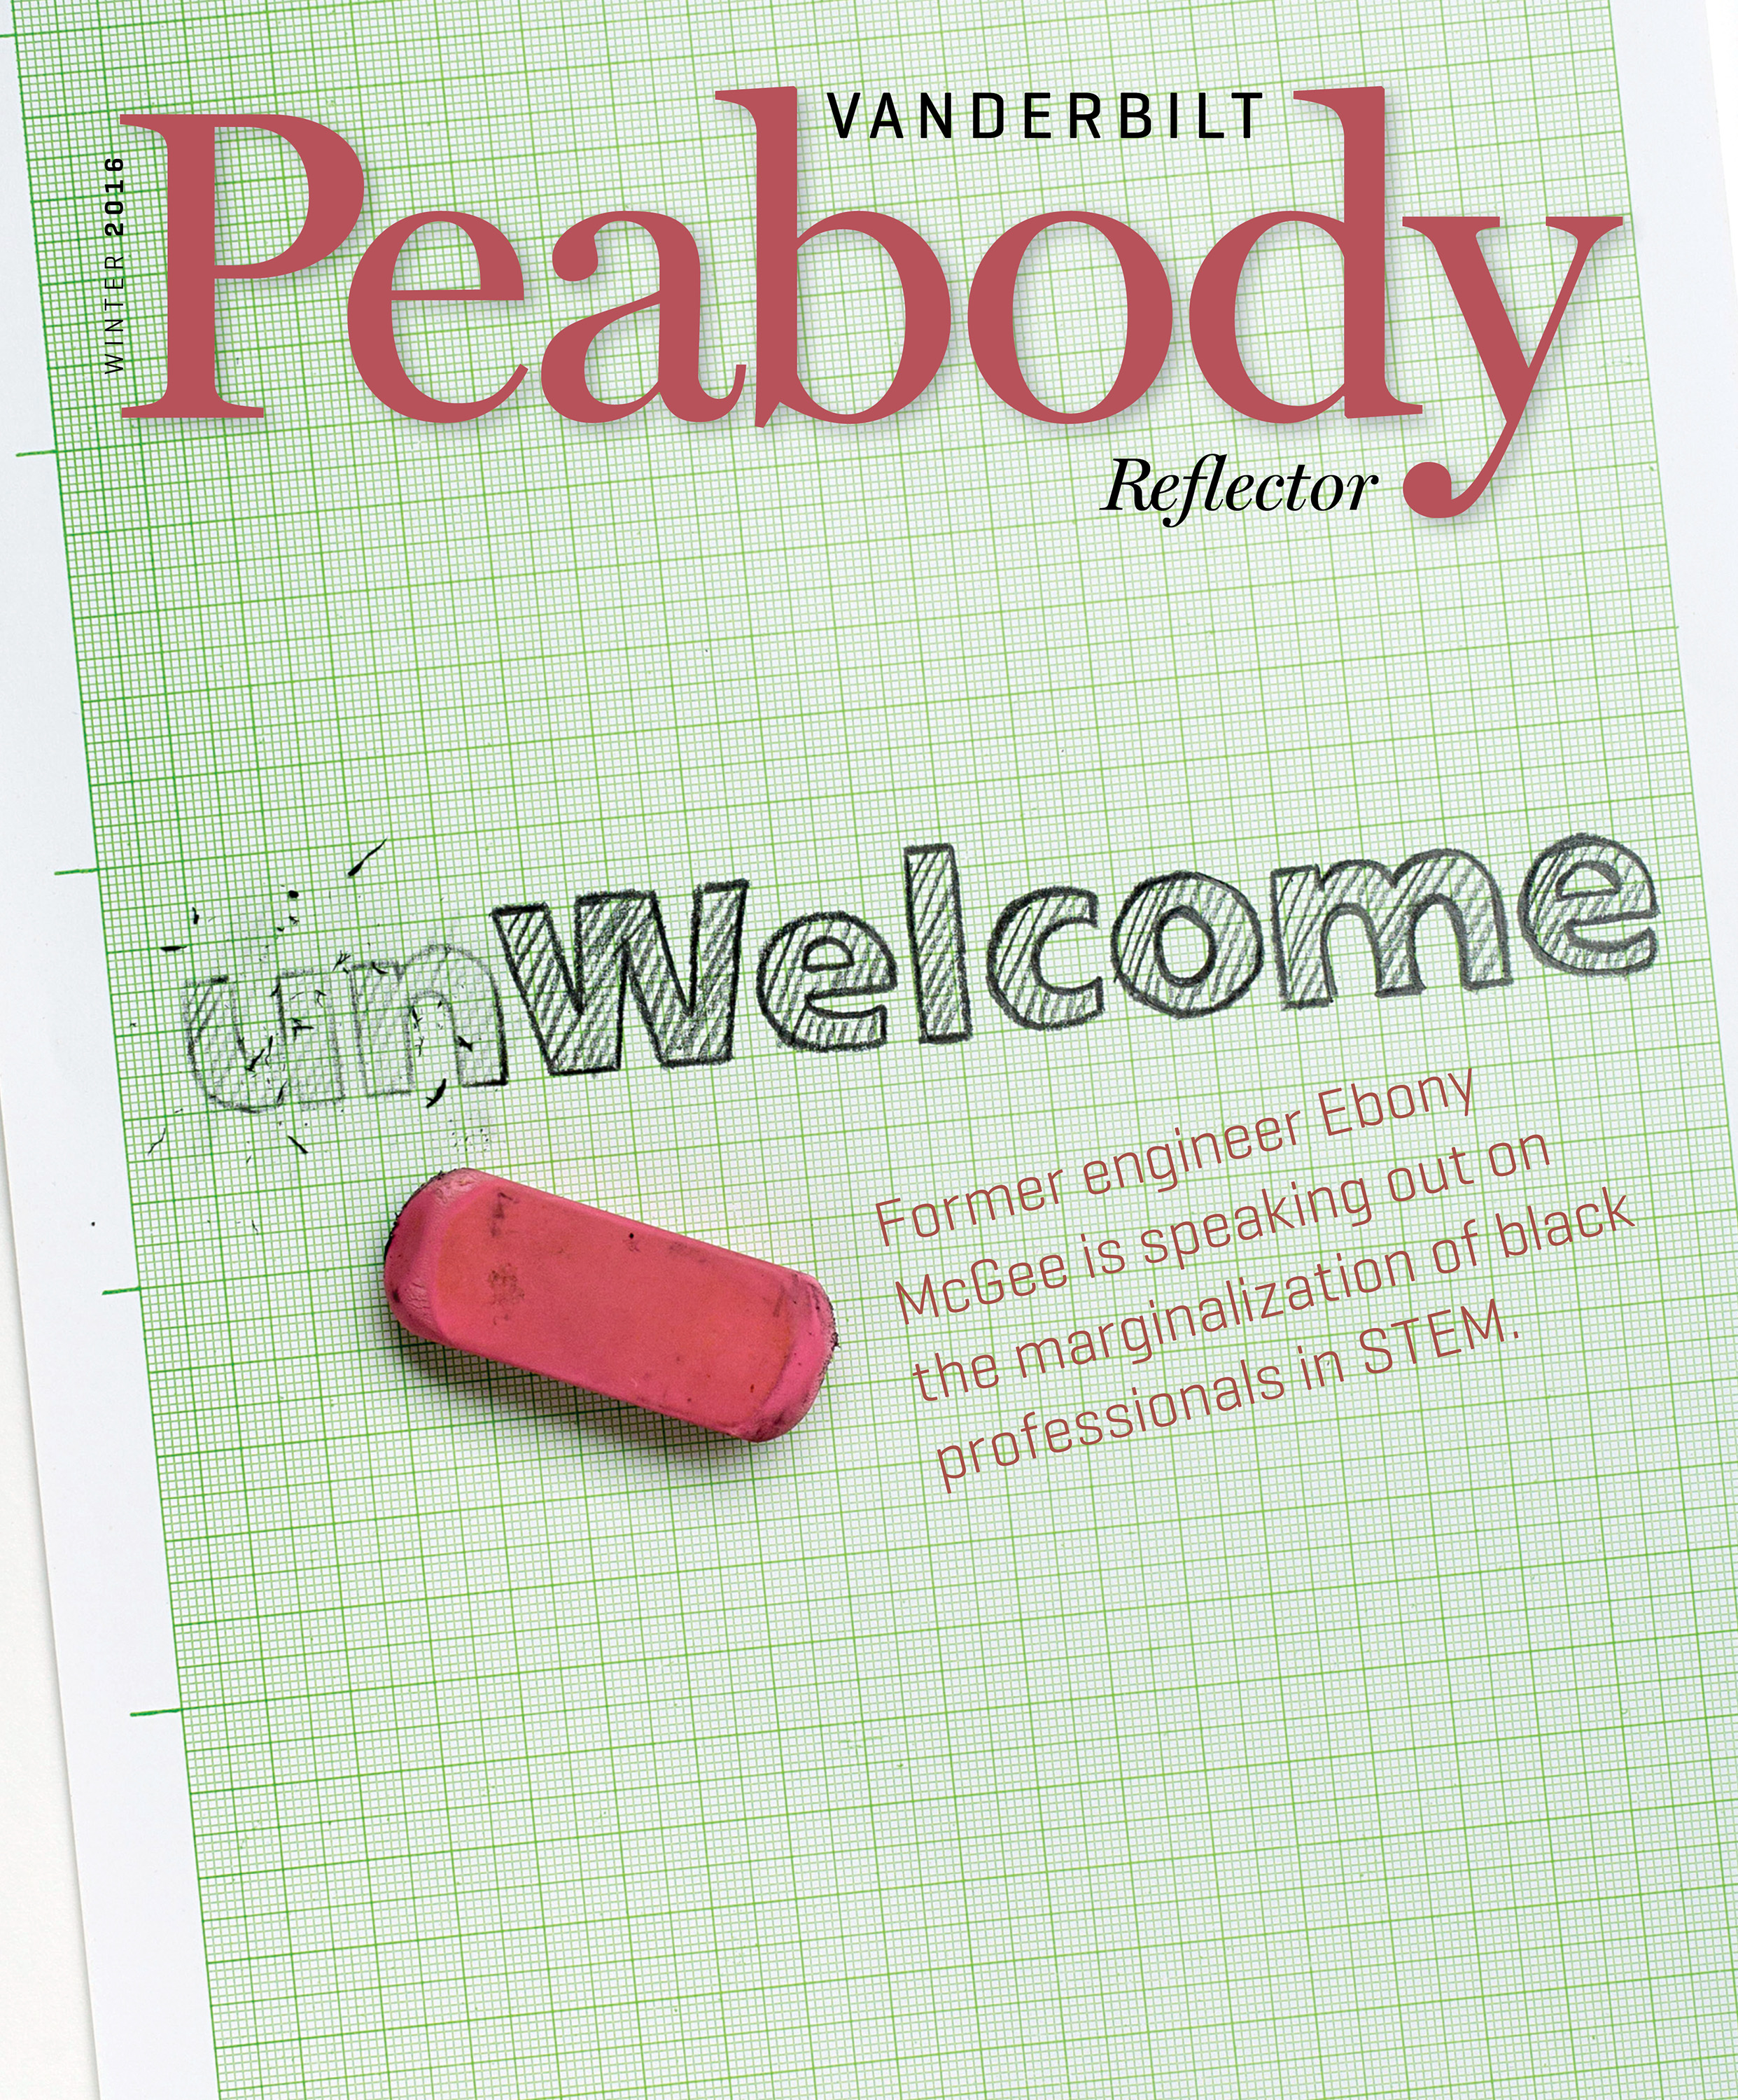 Peabody Reflector magazine